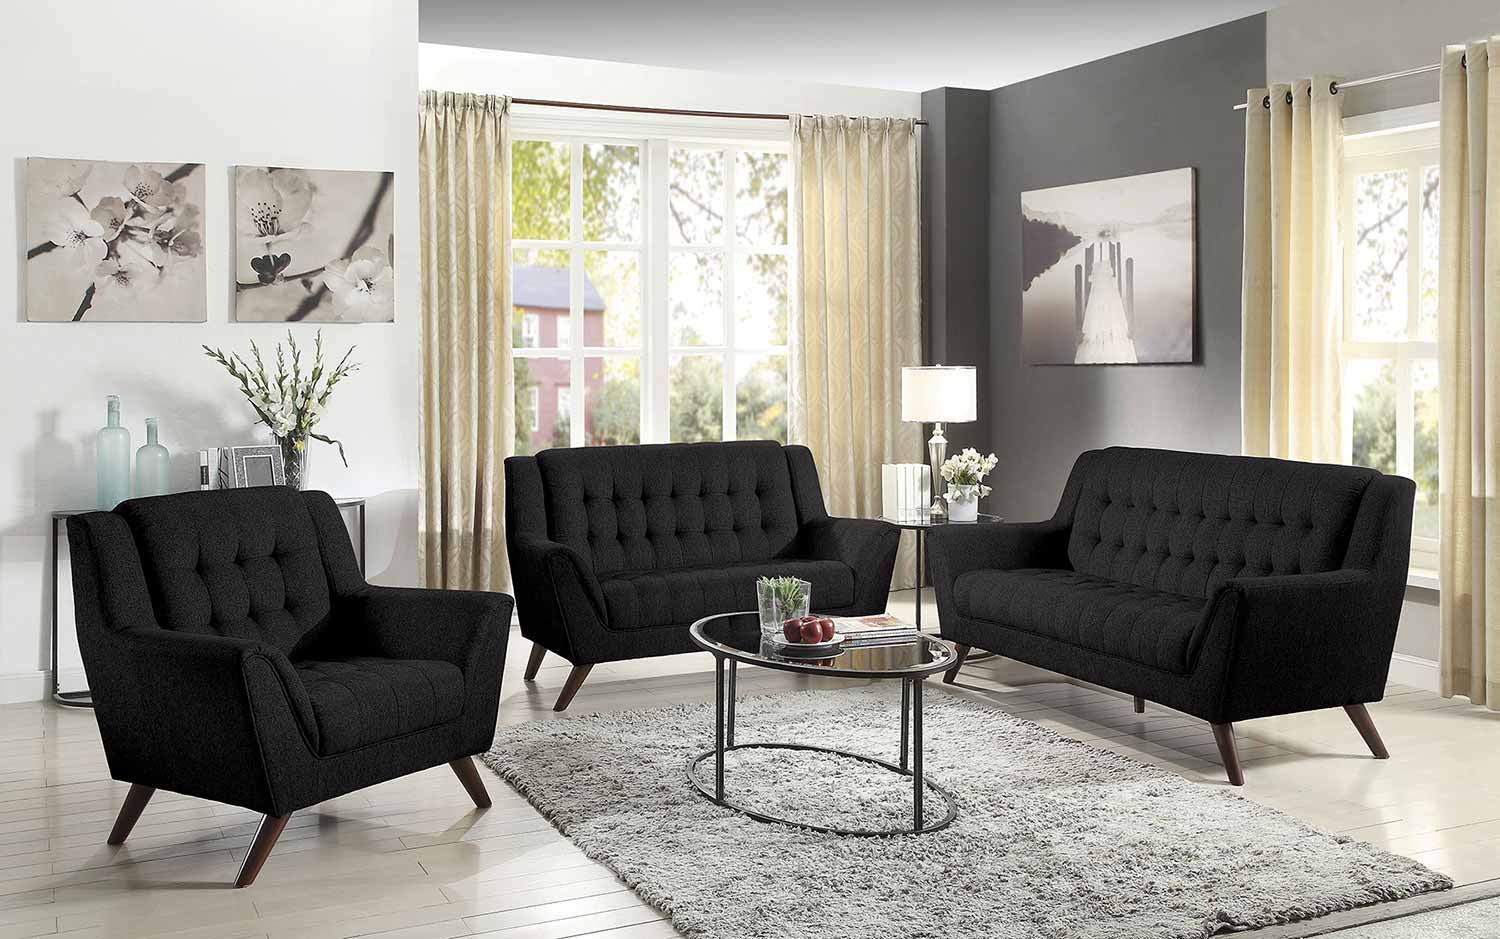 Coaster Baby Natalia Sofa Set Black